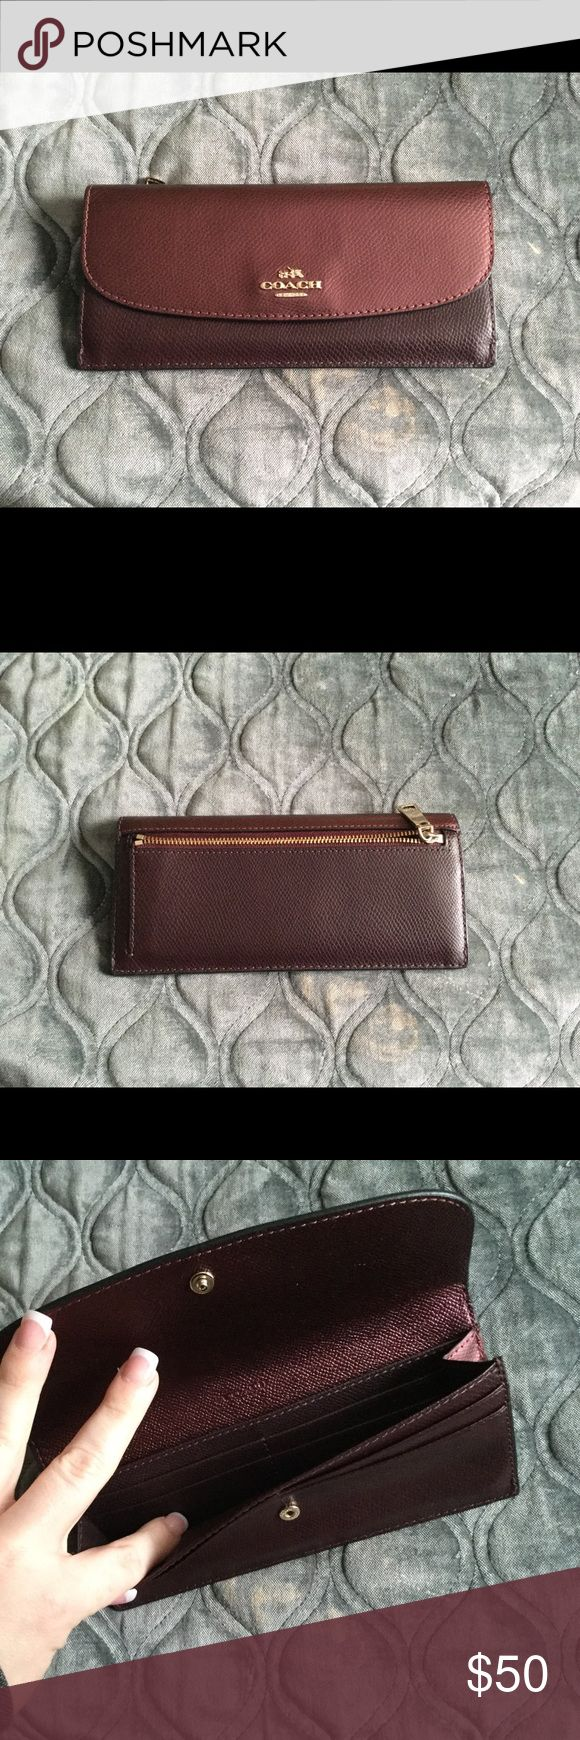 Coach wallet Coach wallet used for a month then purchased a bigger wallet Coach Bags Wallets